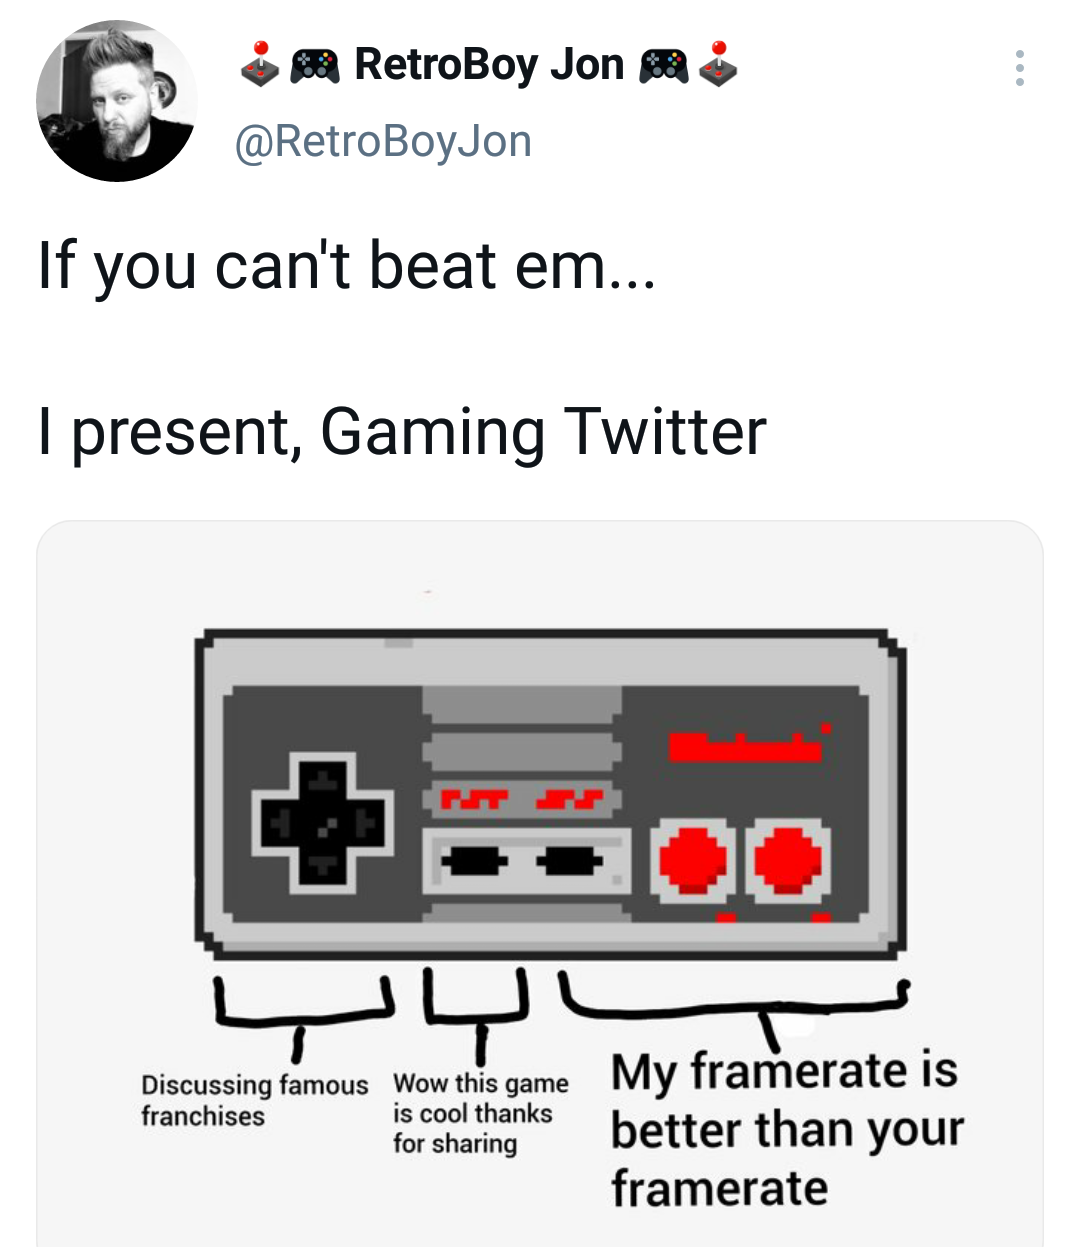 Memes Toxic gamers on Twitter